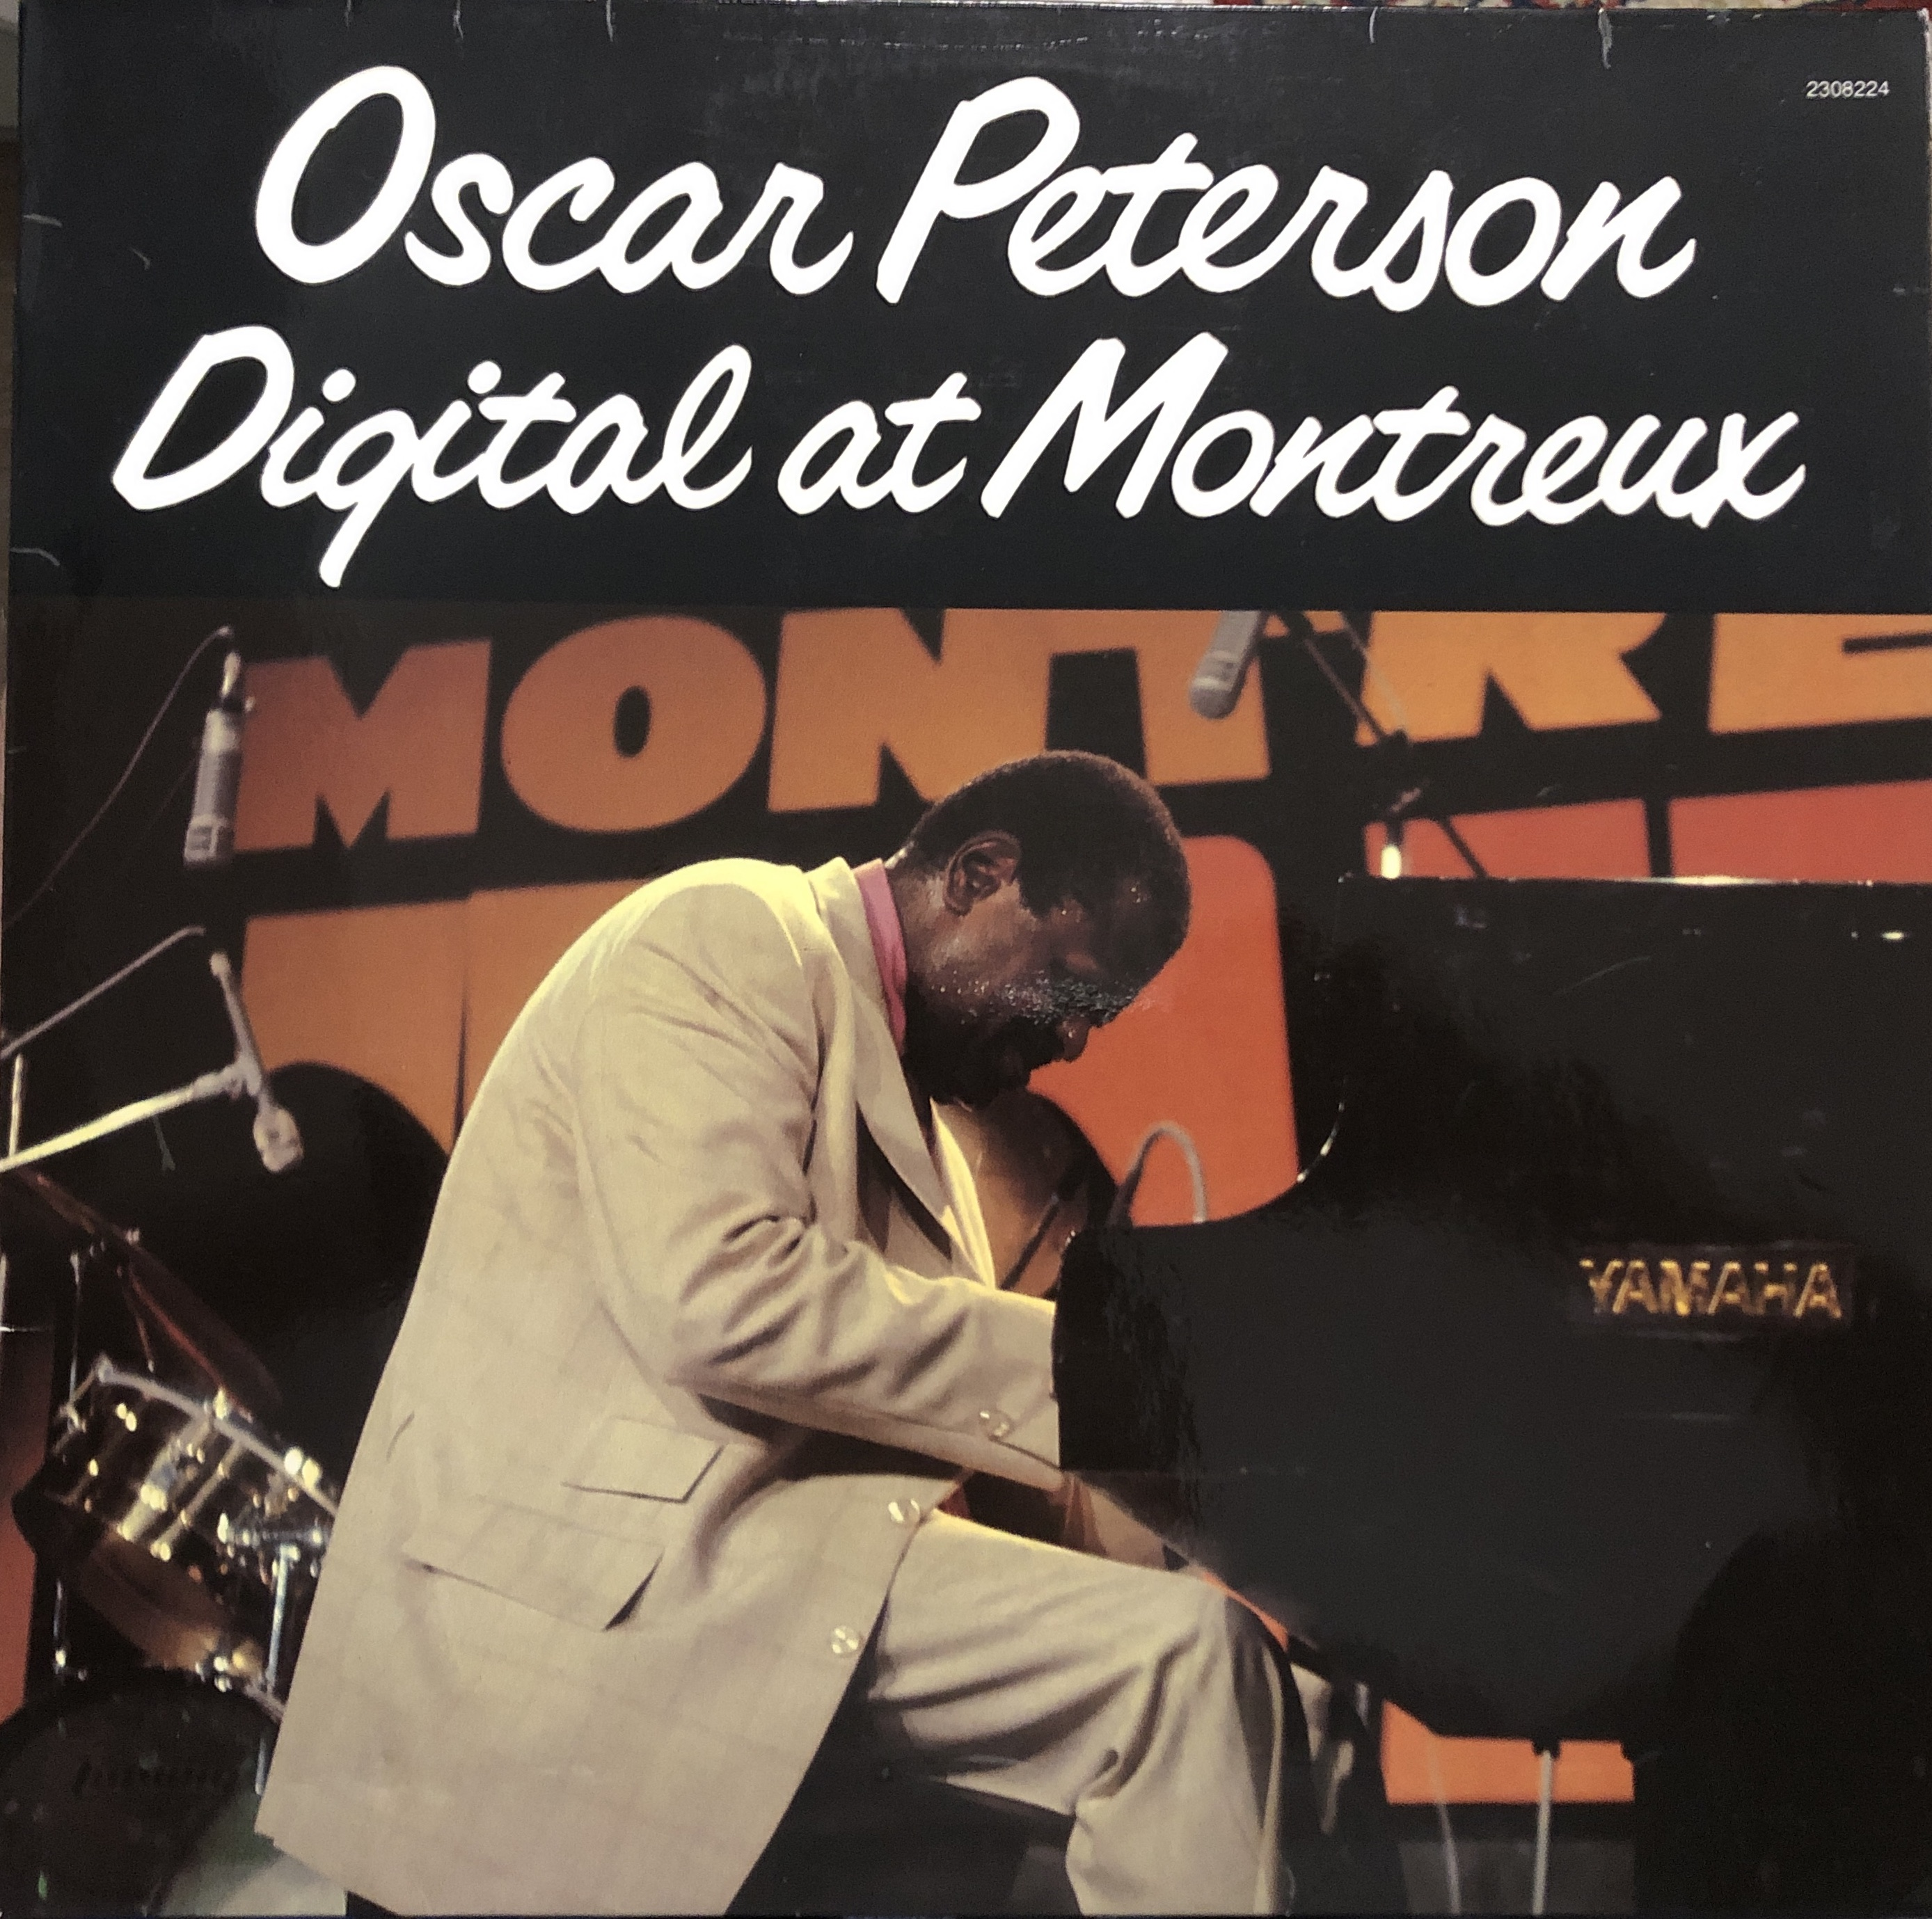 Oscar Peterson - Digital at Montreaux